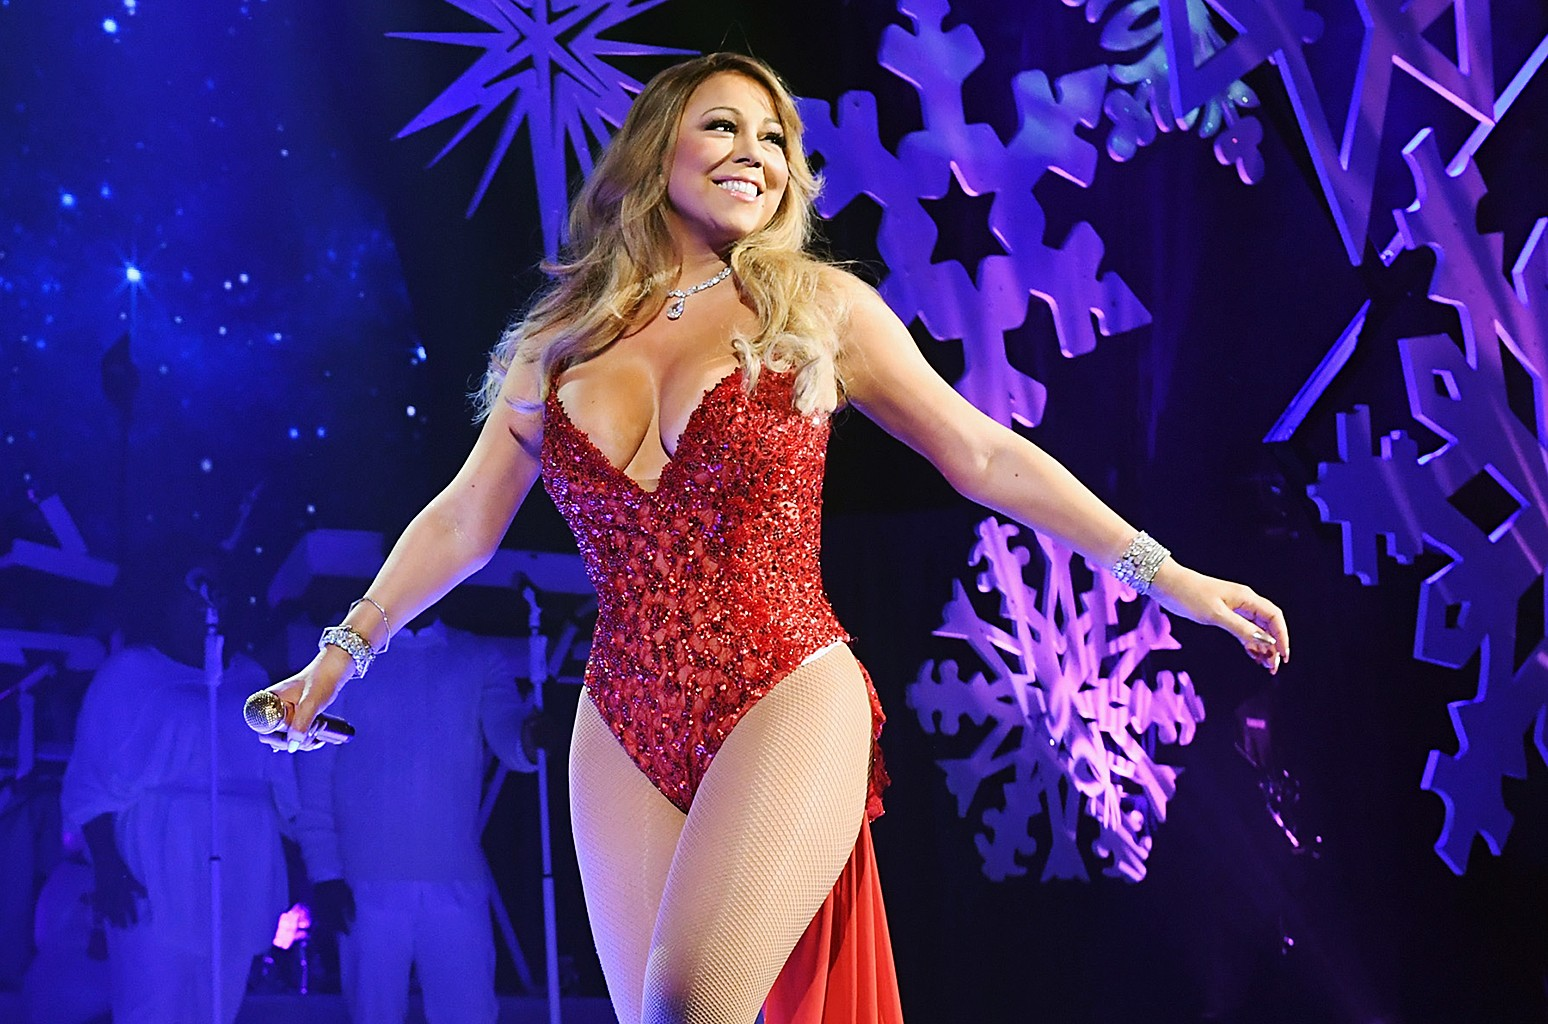 Mariah Carey performs during the opening show of 'Mariah Carey: All I Want For Christmas Is You' at Beacon Theatre on Dec. 5, 2016 in New York City.